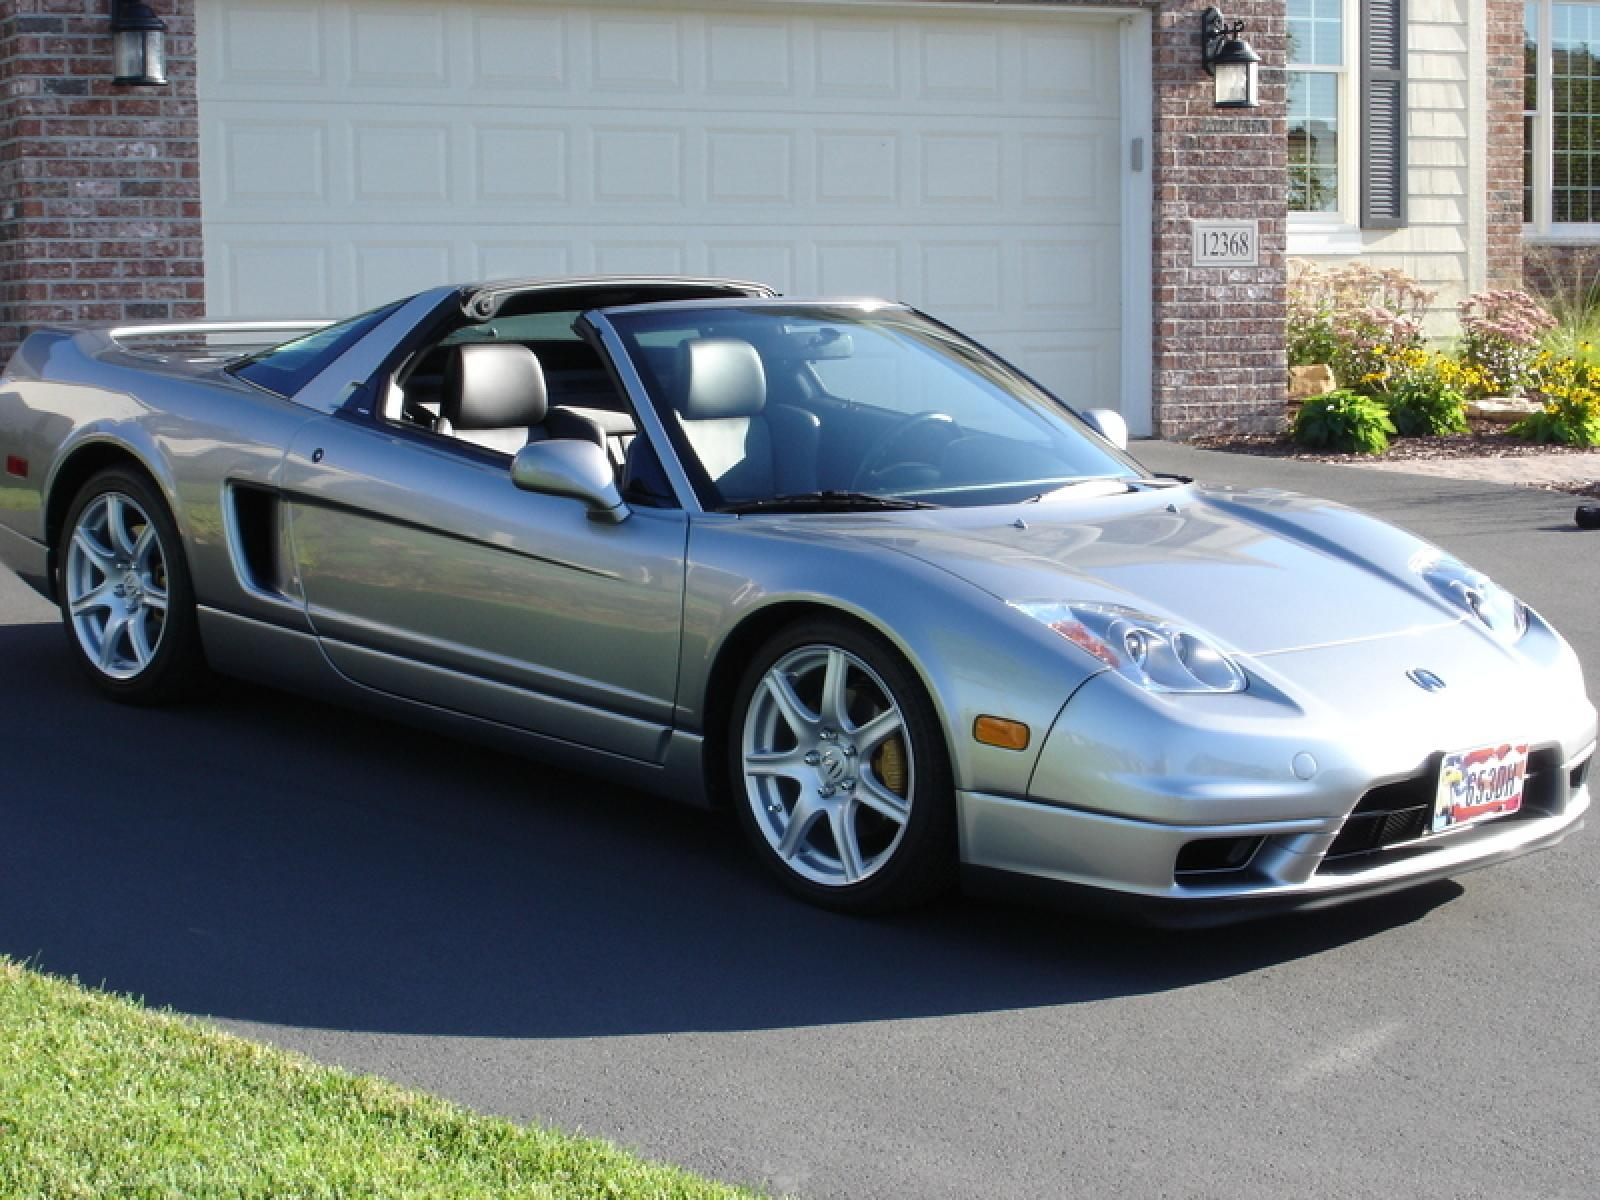 hight resolution of 800 1024 1280 1600 origin 2002 acura nsx